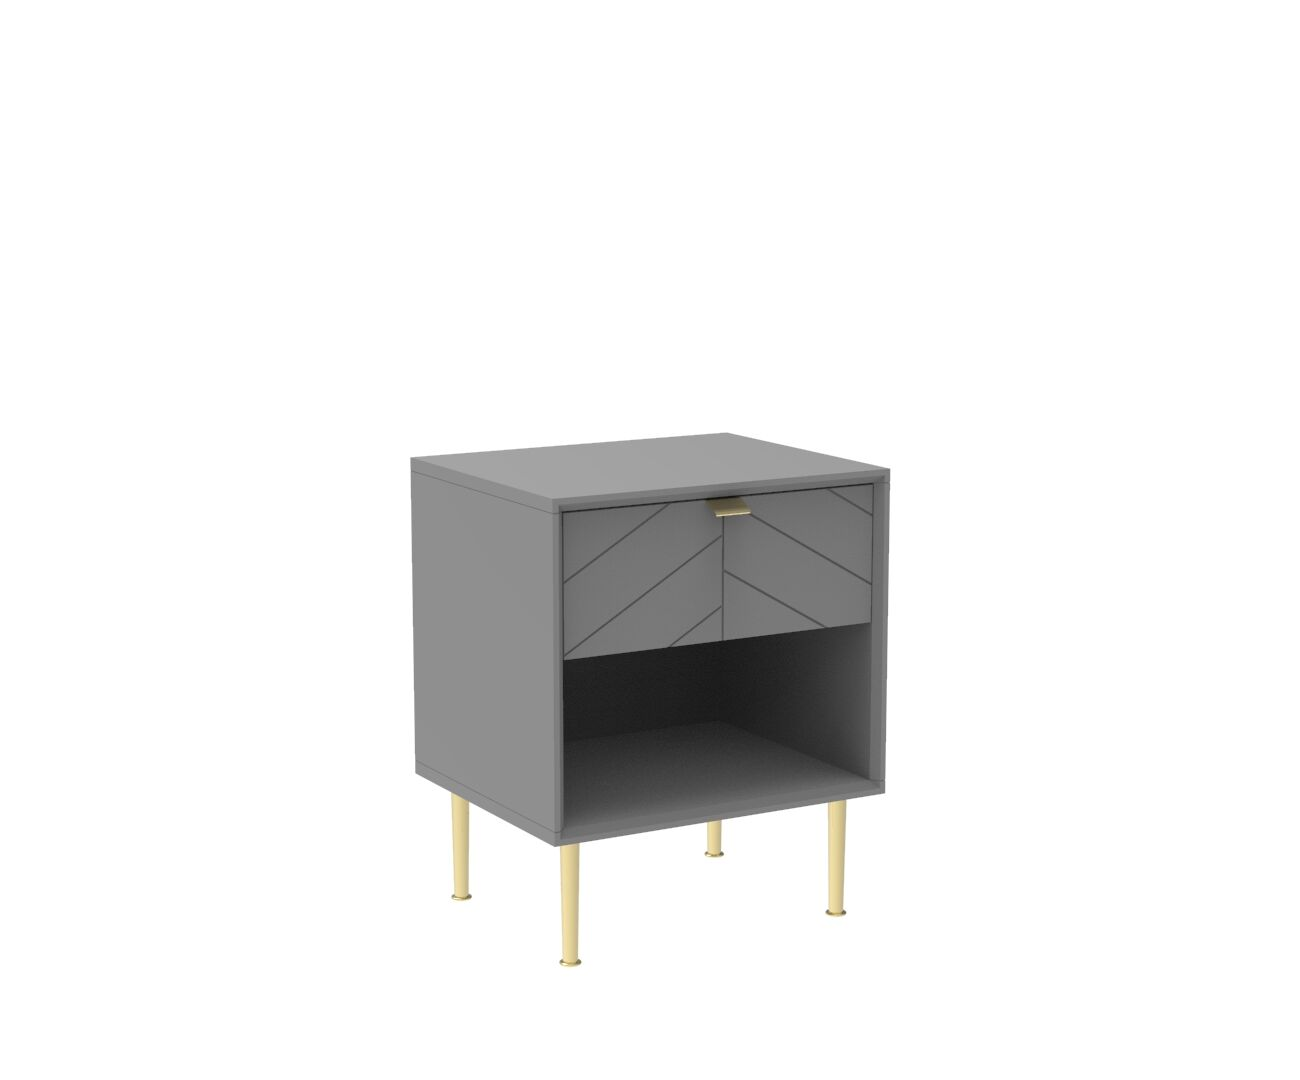 Chevron-patterned Adele Side Table in Mist Grey and Brass